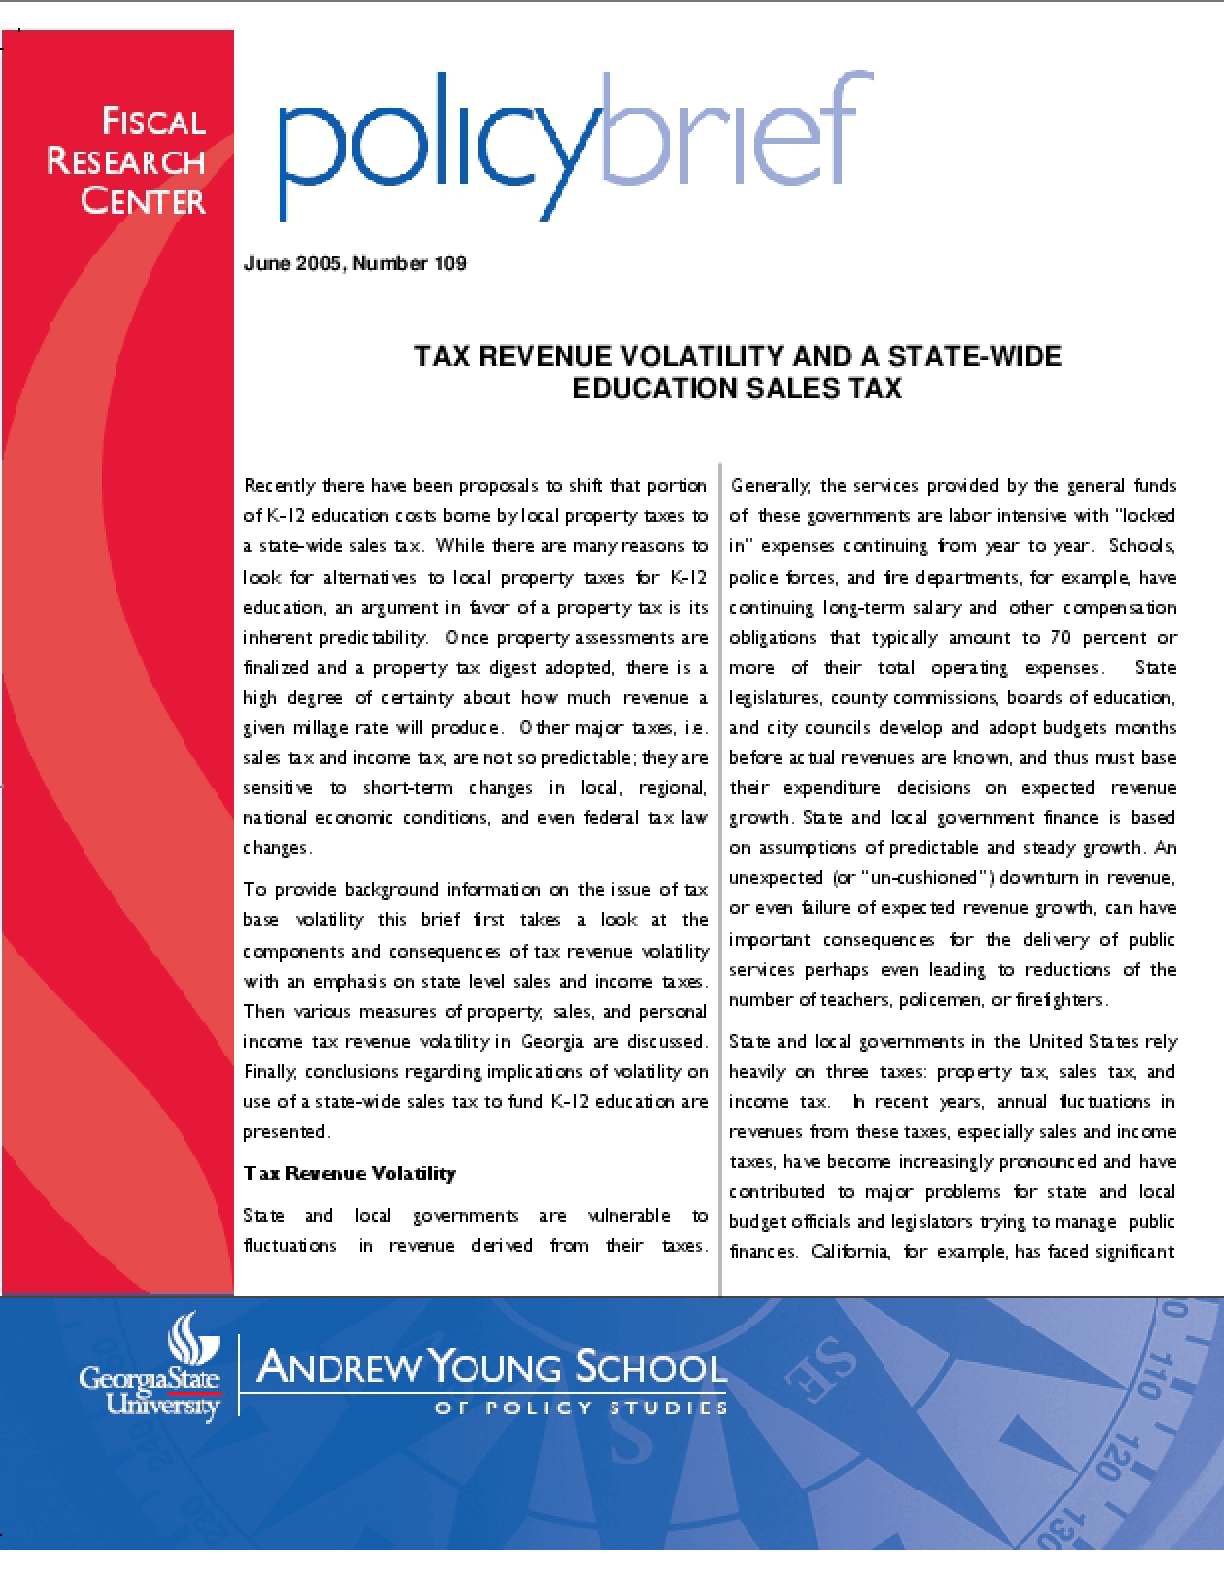 Tax Revenue Volatility and a State-Wide Education Sales Tax - Brief